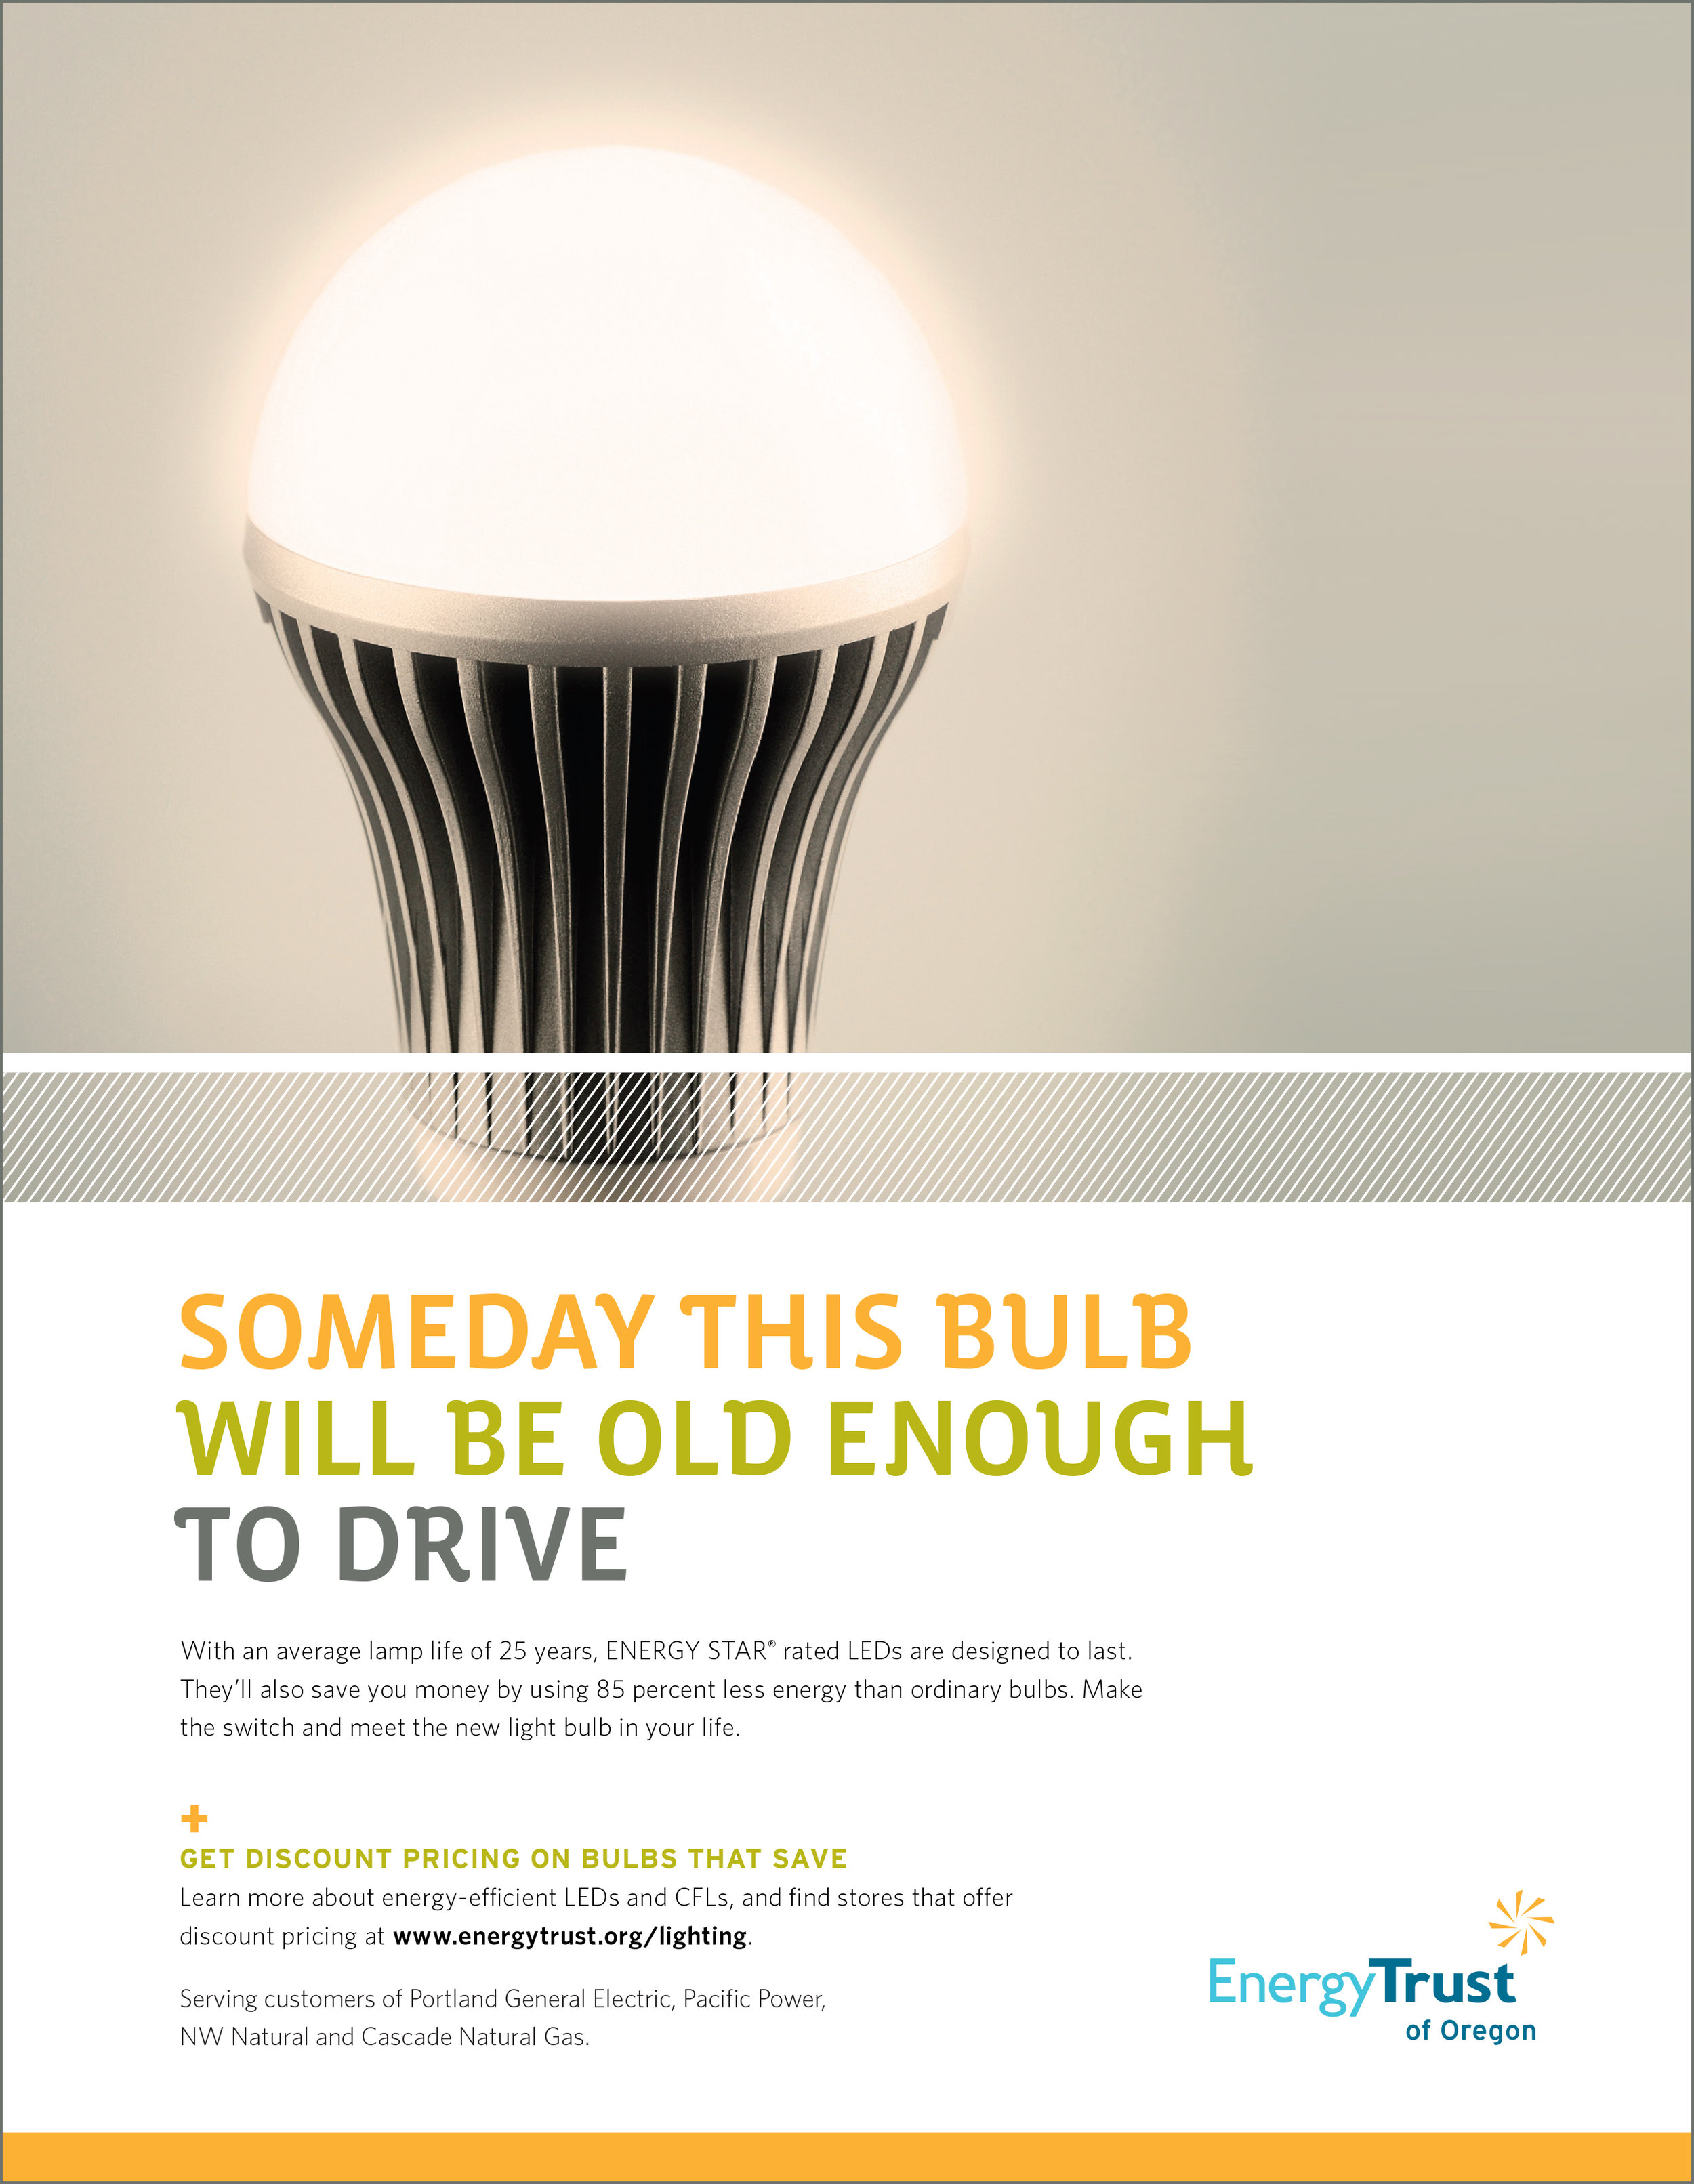 Meet the New Light Bulb in Your Life